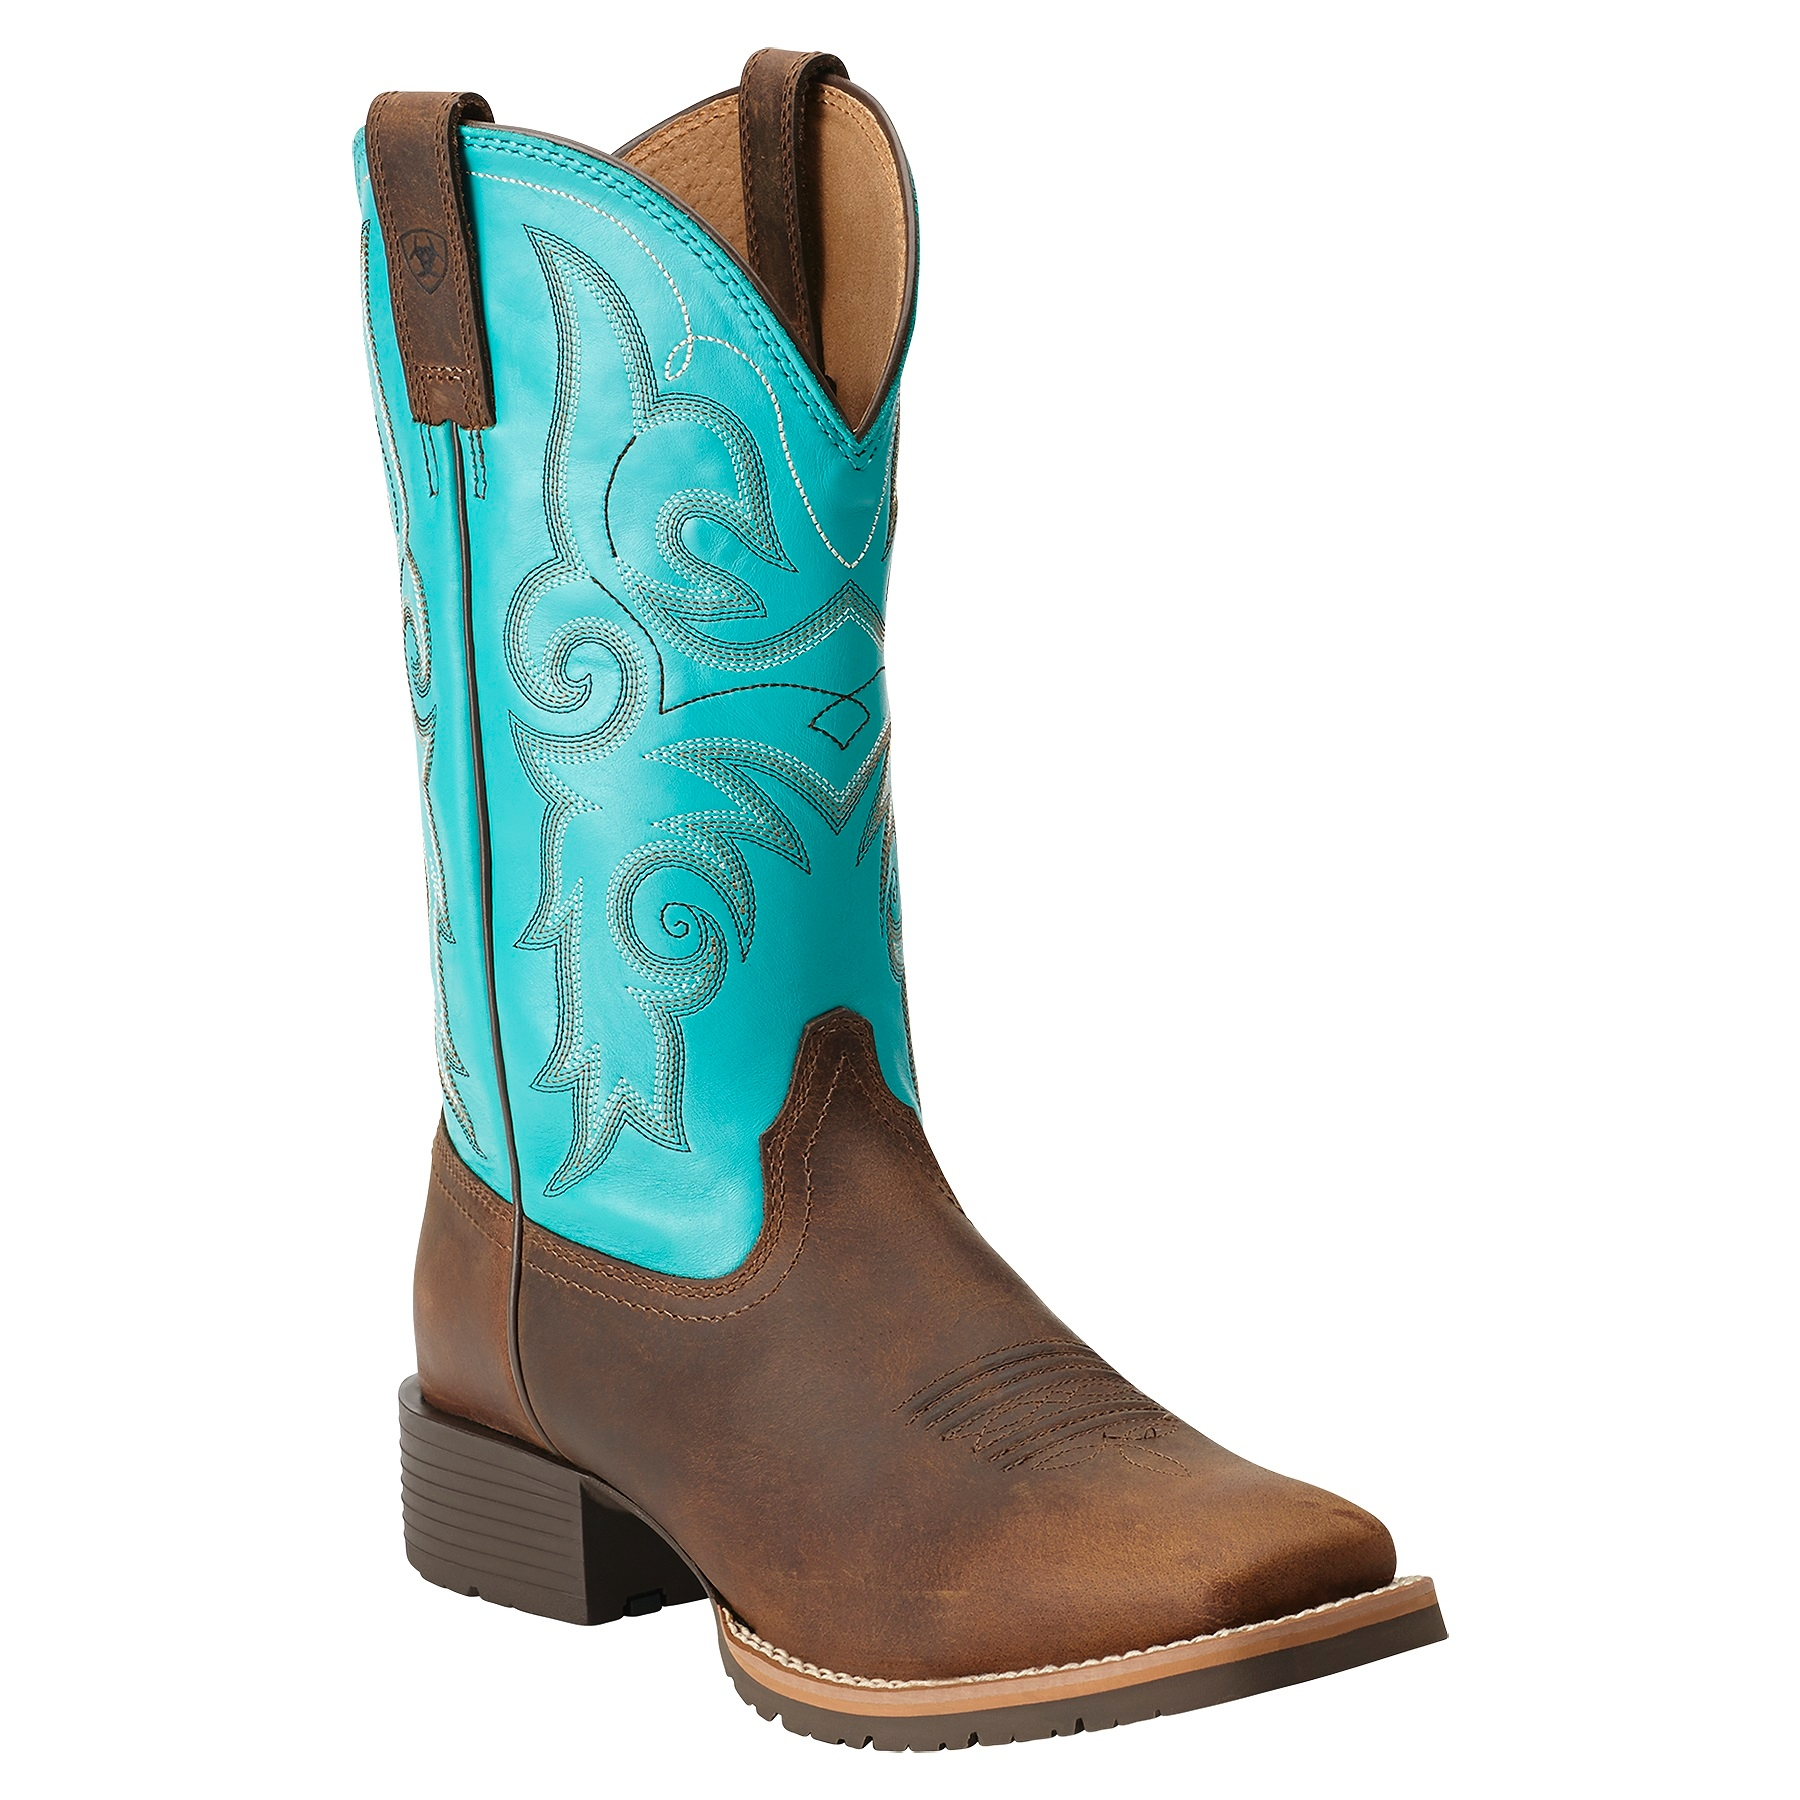 Ariat Womens Boots ScmIBotj